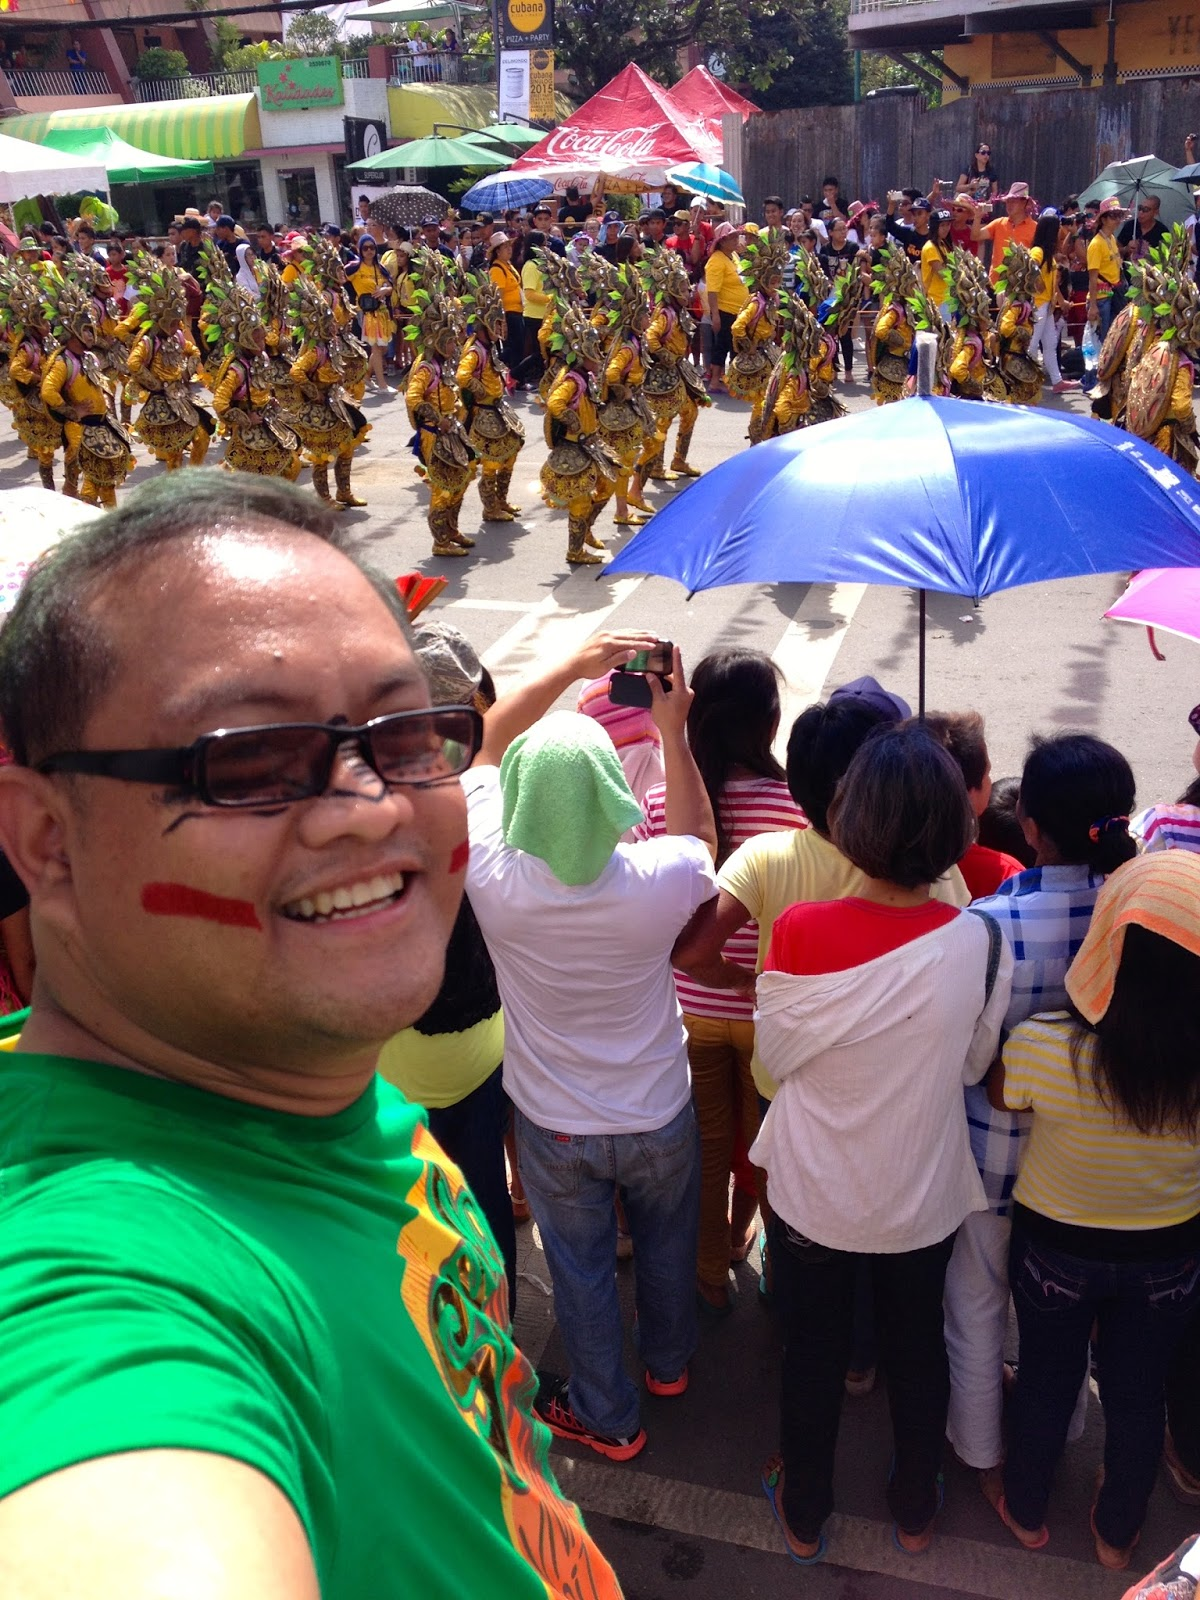 #sinulogselfie at Mango Avenue